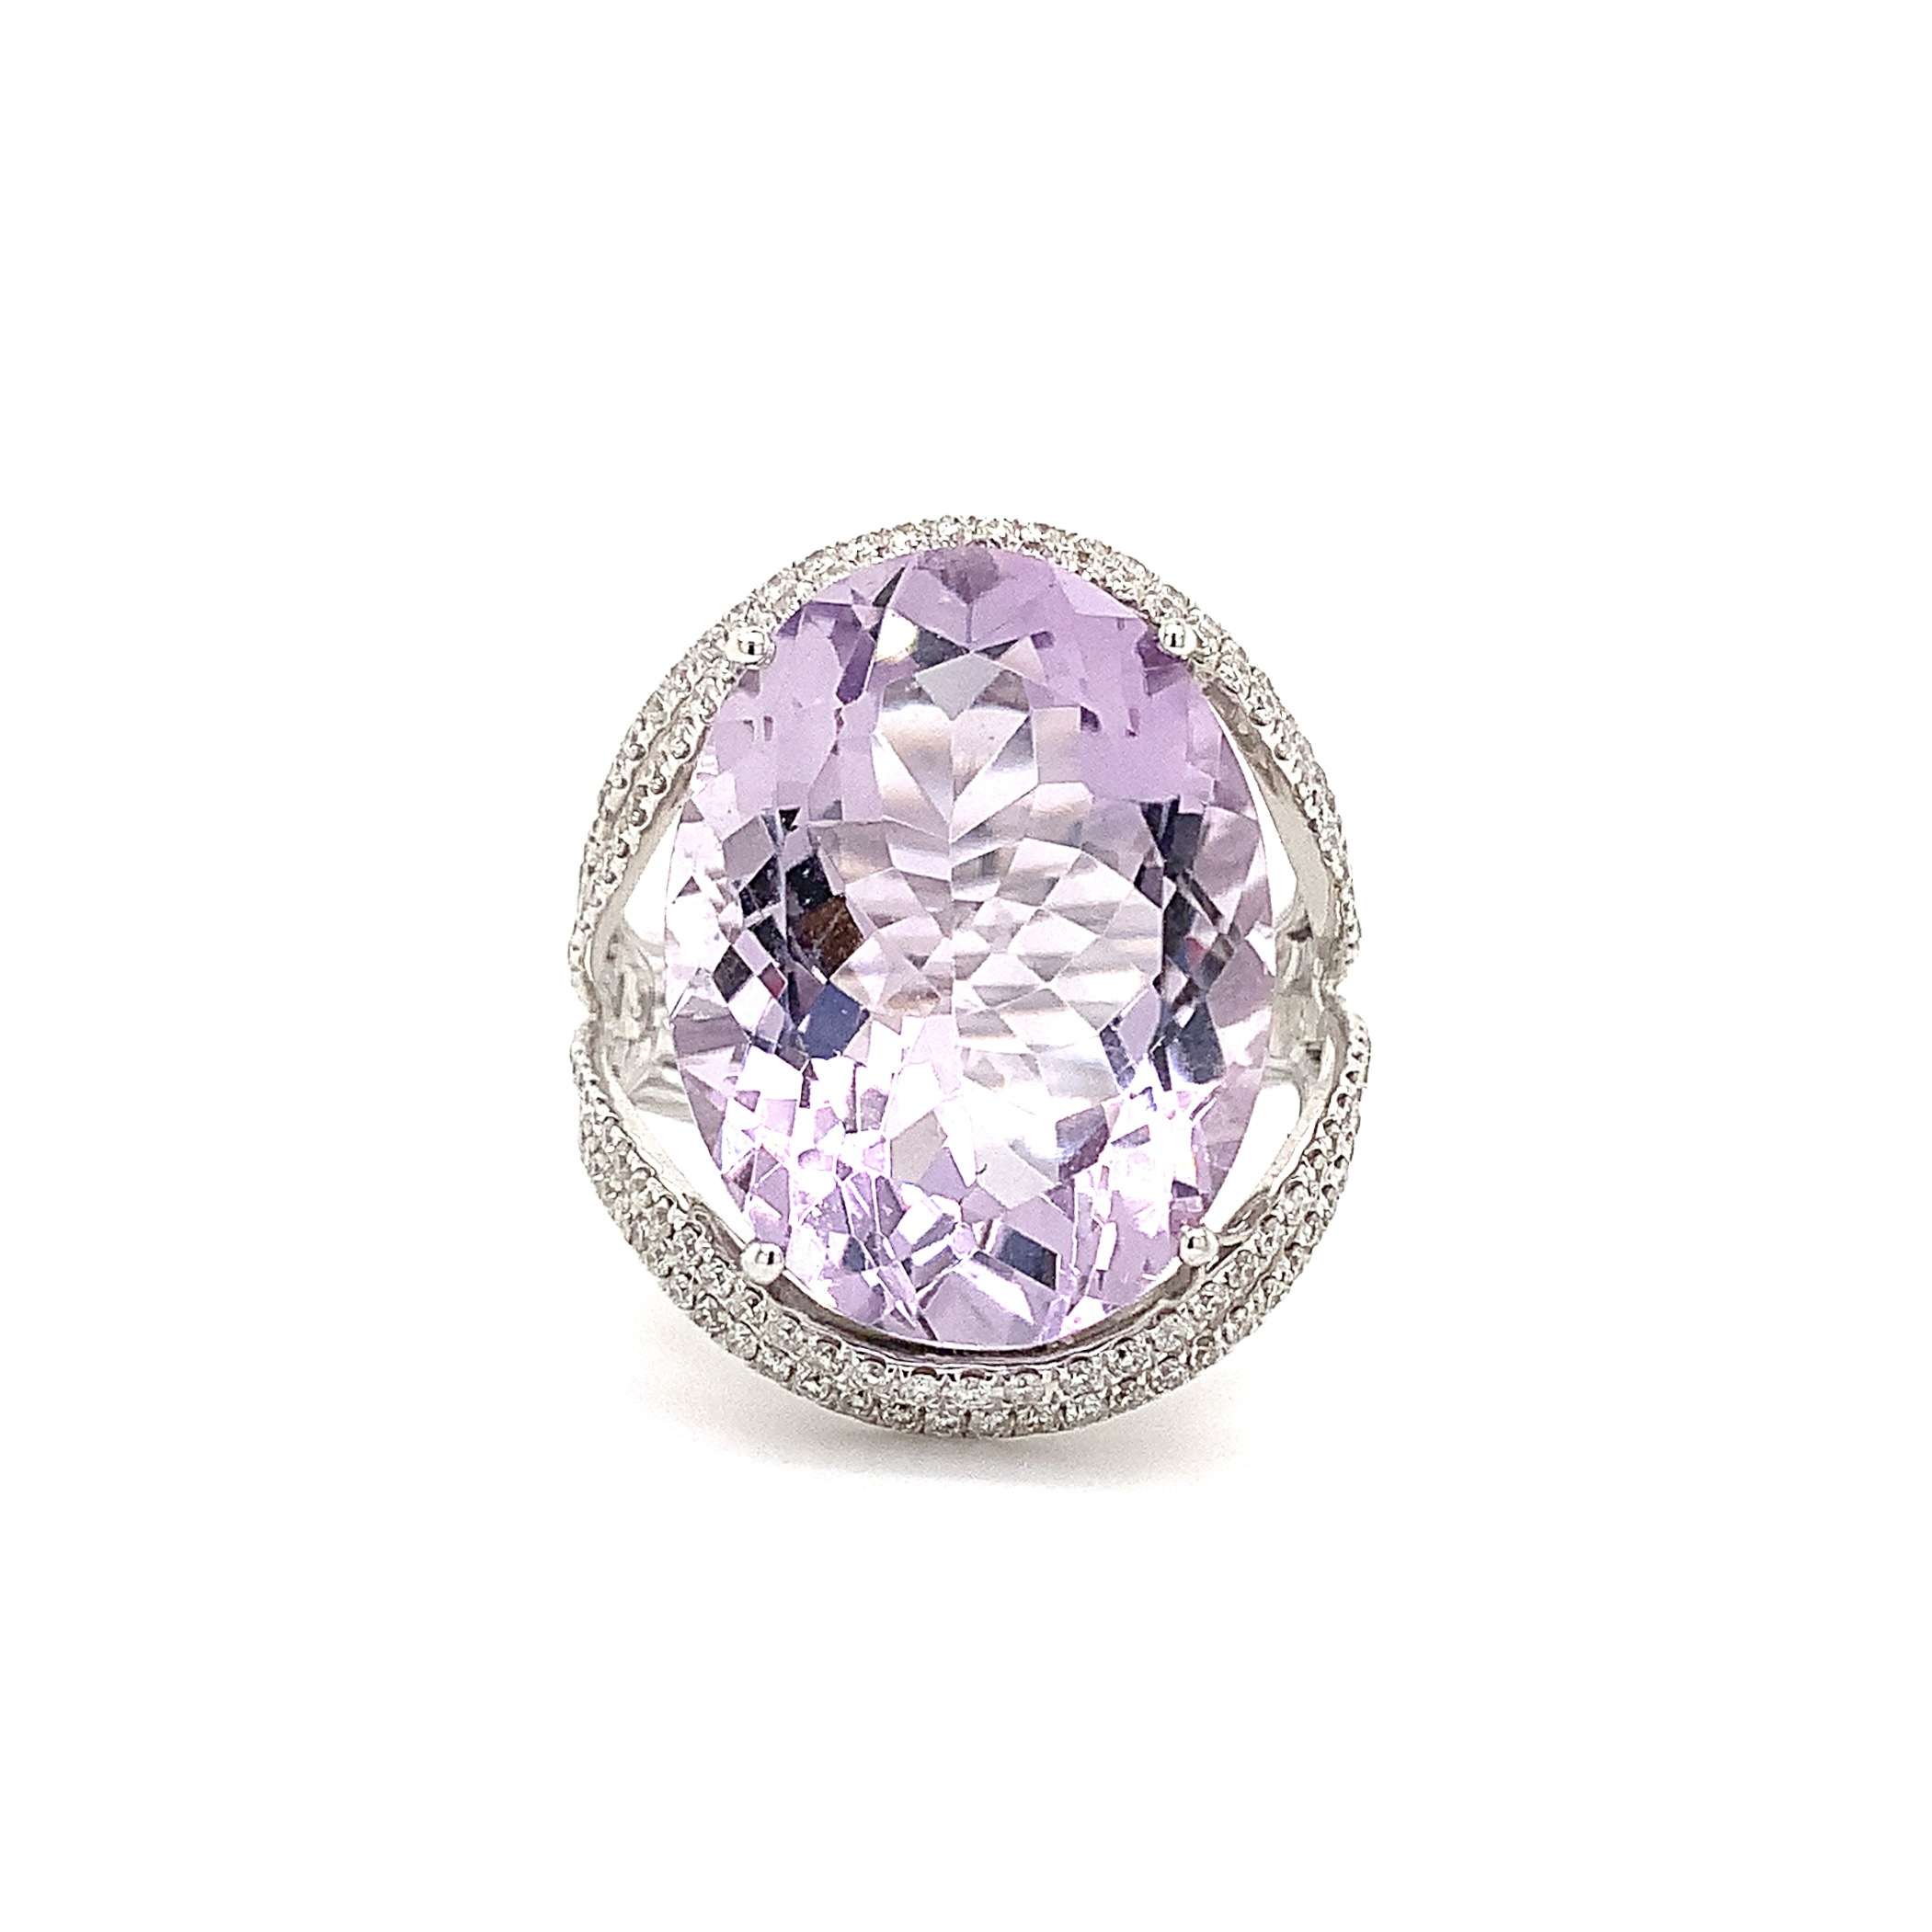 Lavender Amethyst and Diamond Ring in 18 kt White Gold.